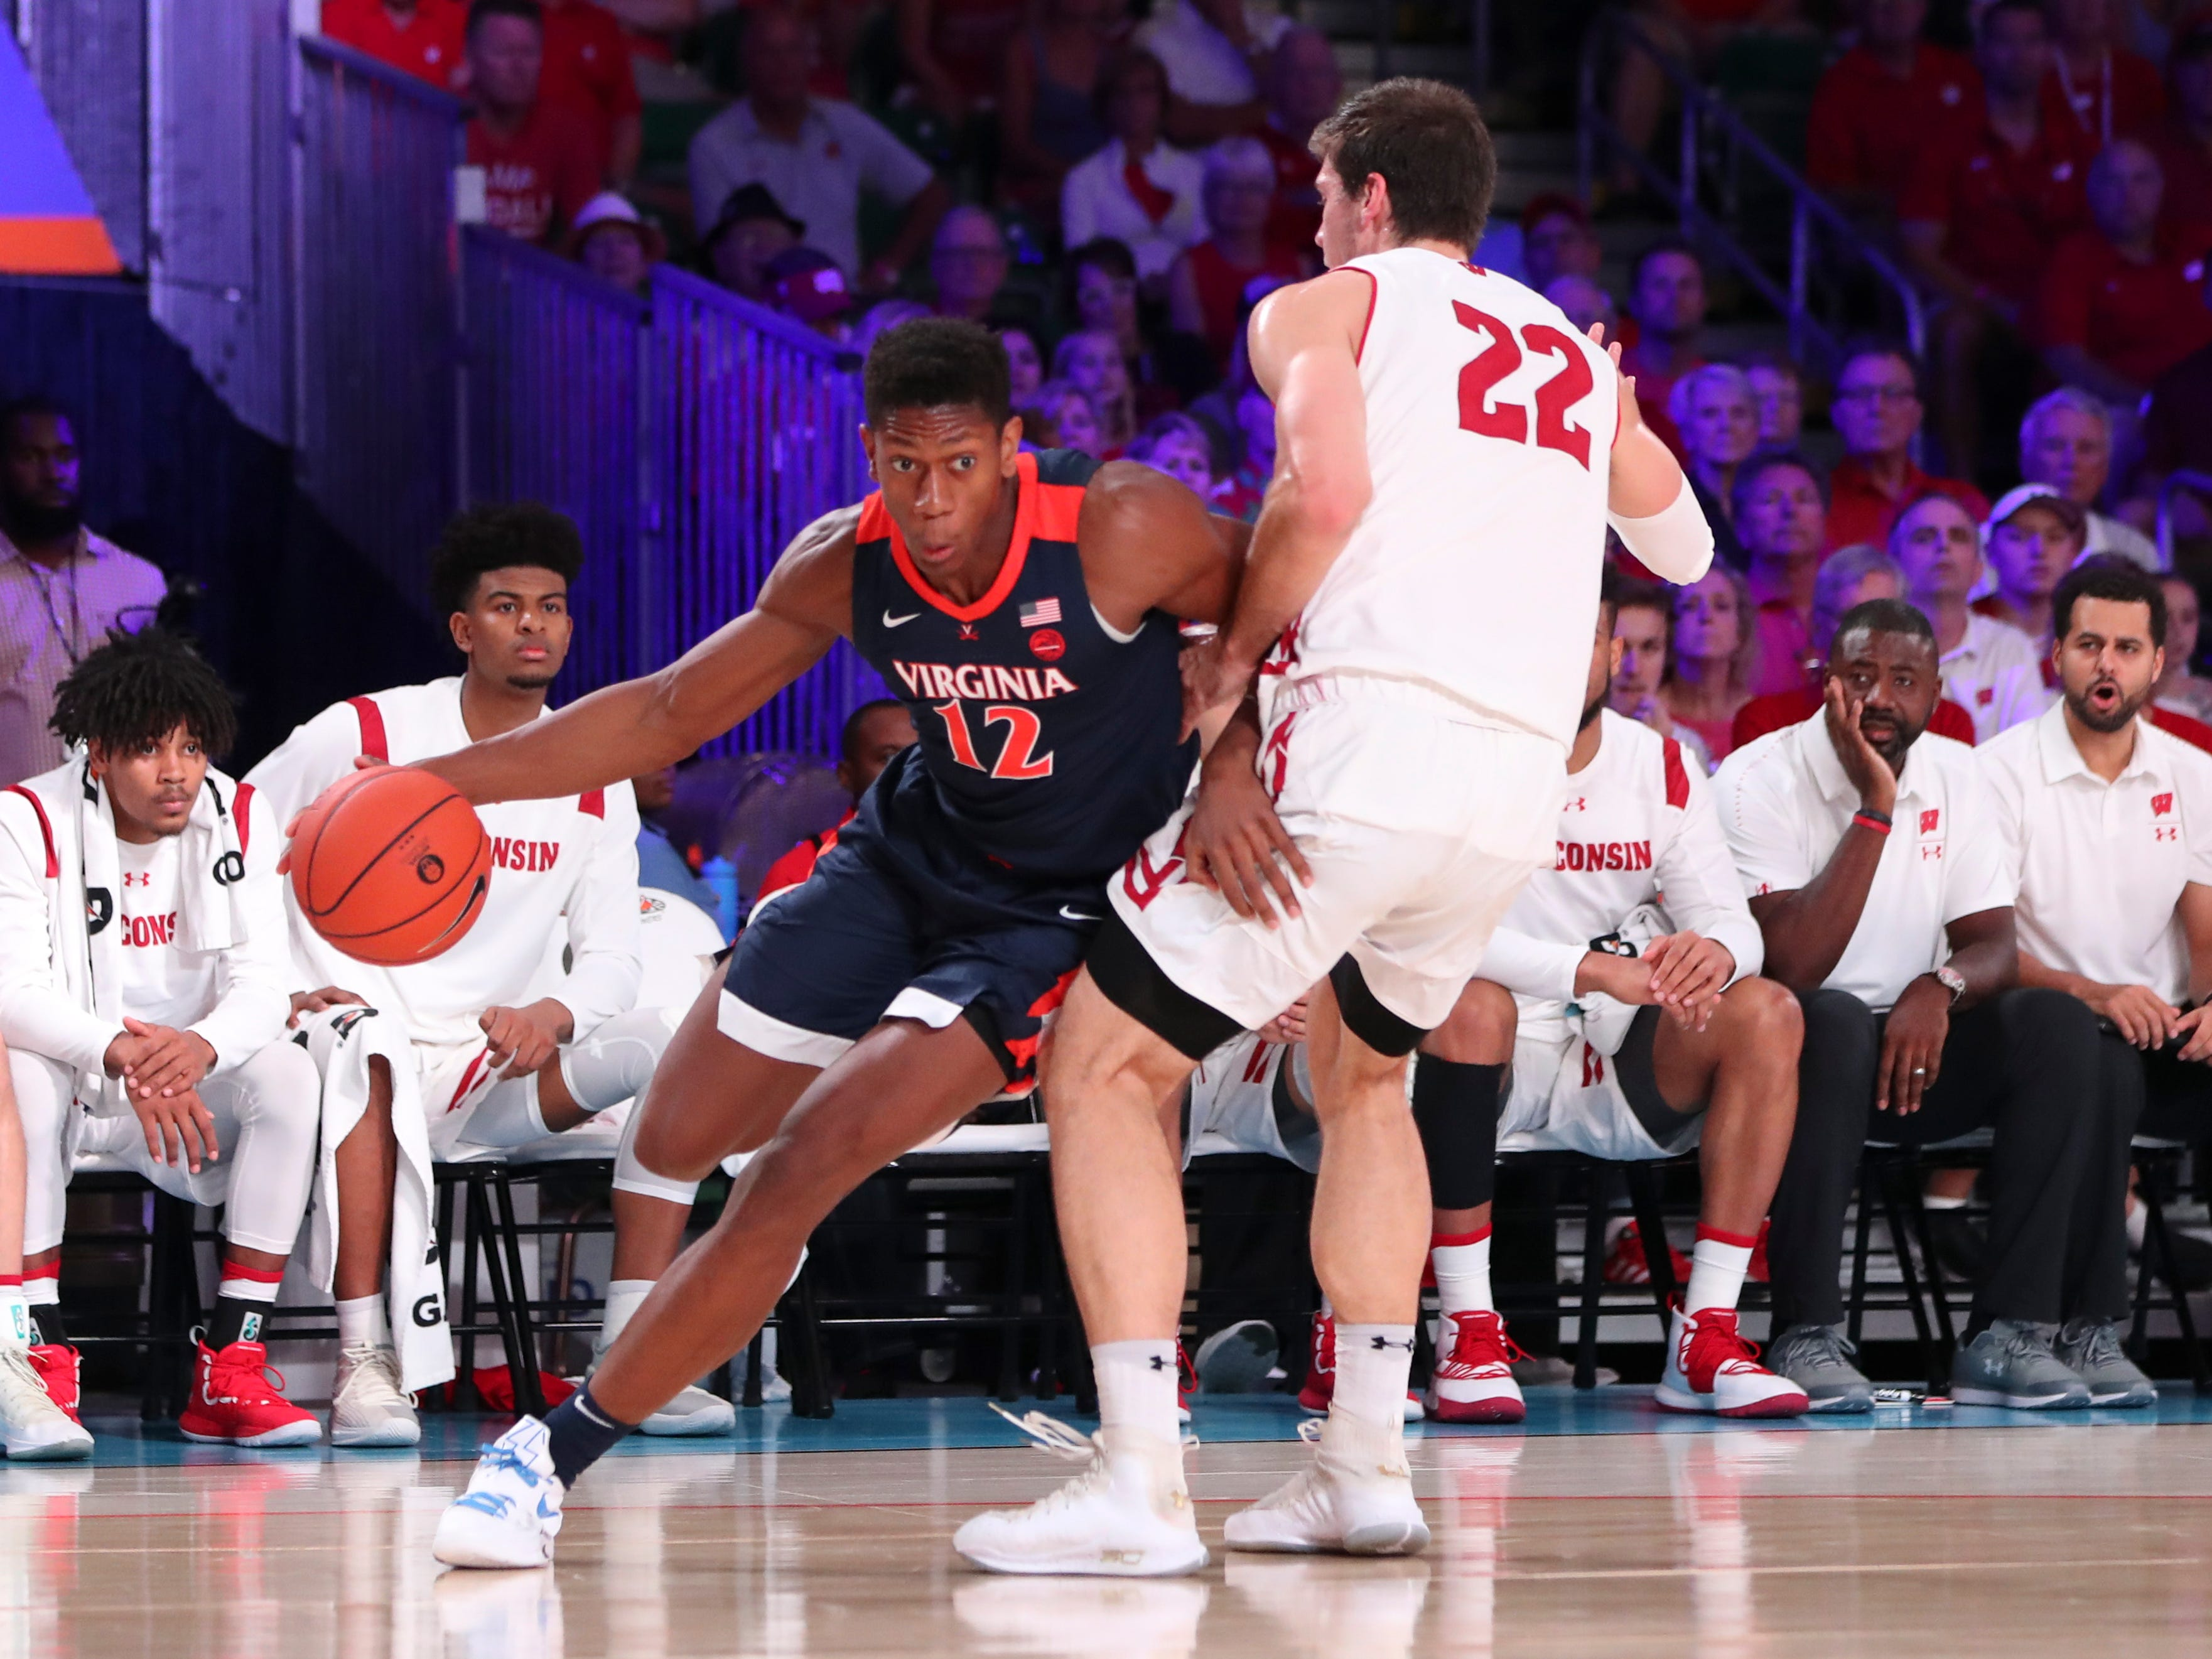 Virginia Cavaliers guard De'Andre Hunter drives to the basket past Badgers forward Ethan Happ.